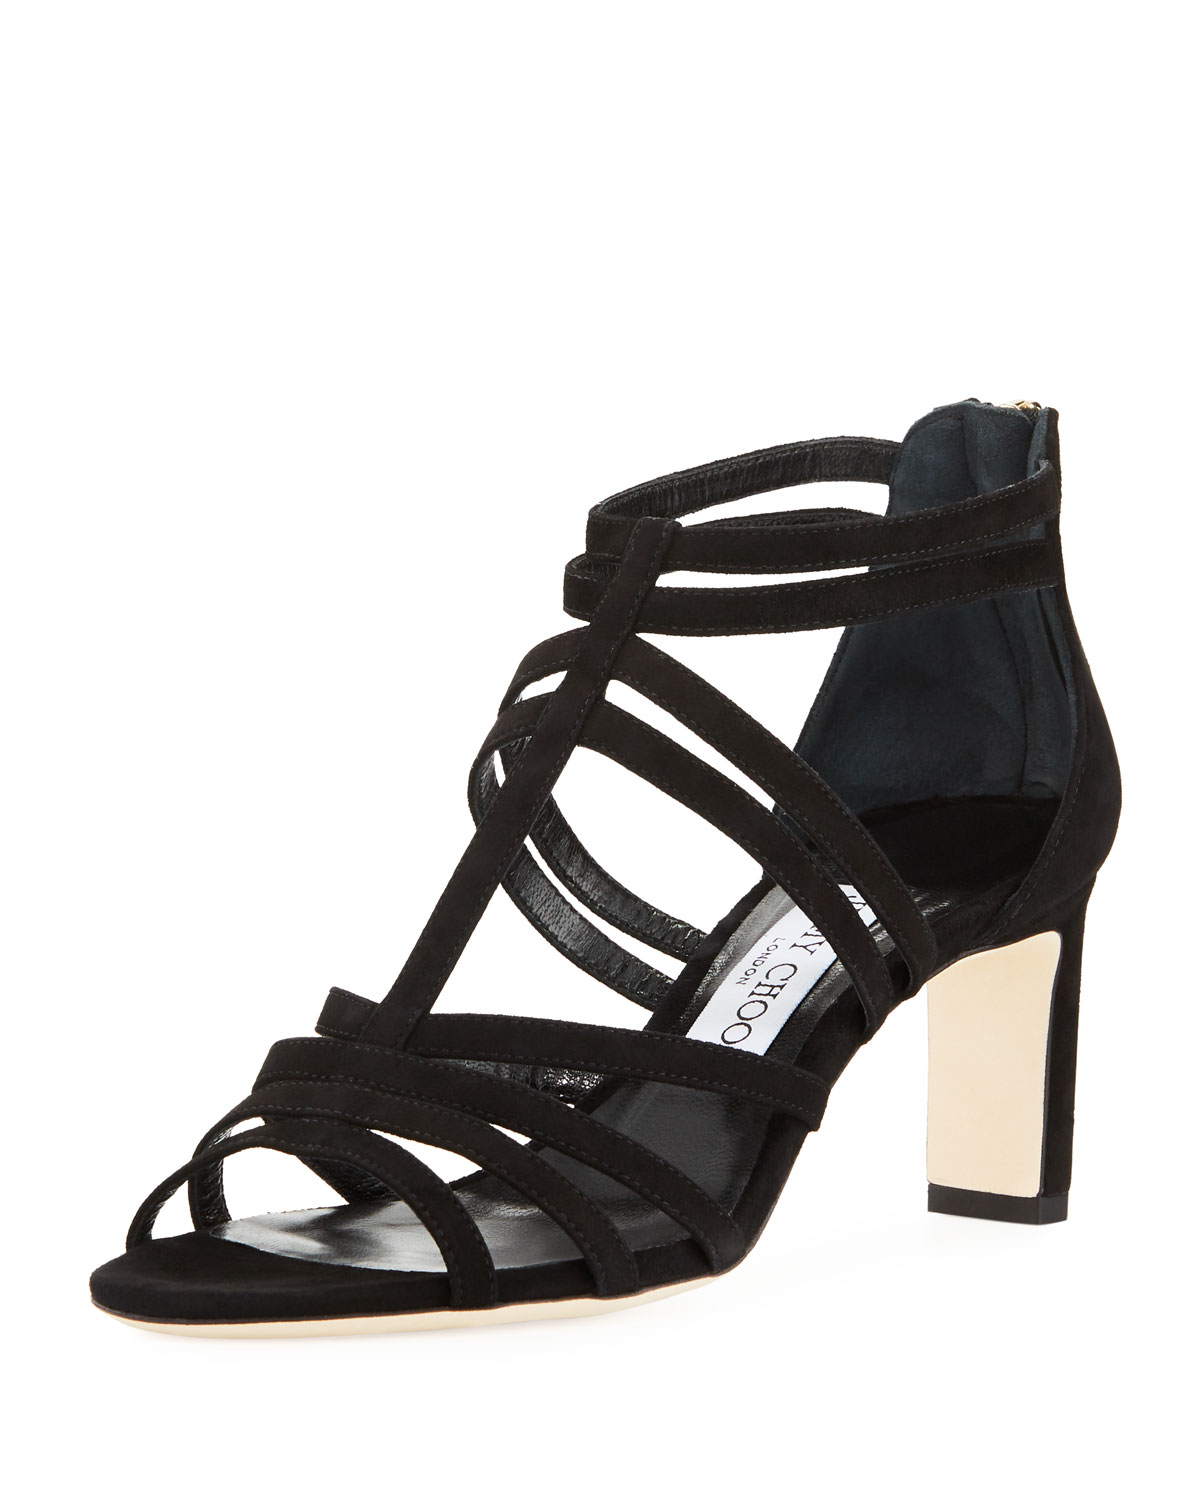 8511d4cee47 Jimmy Choo Selina Suede Strappy 65mm Sandal